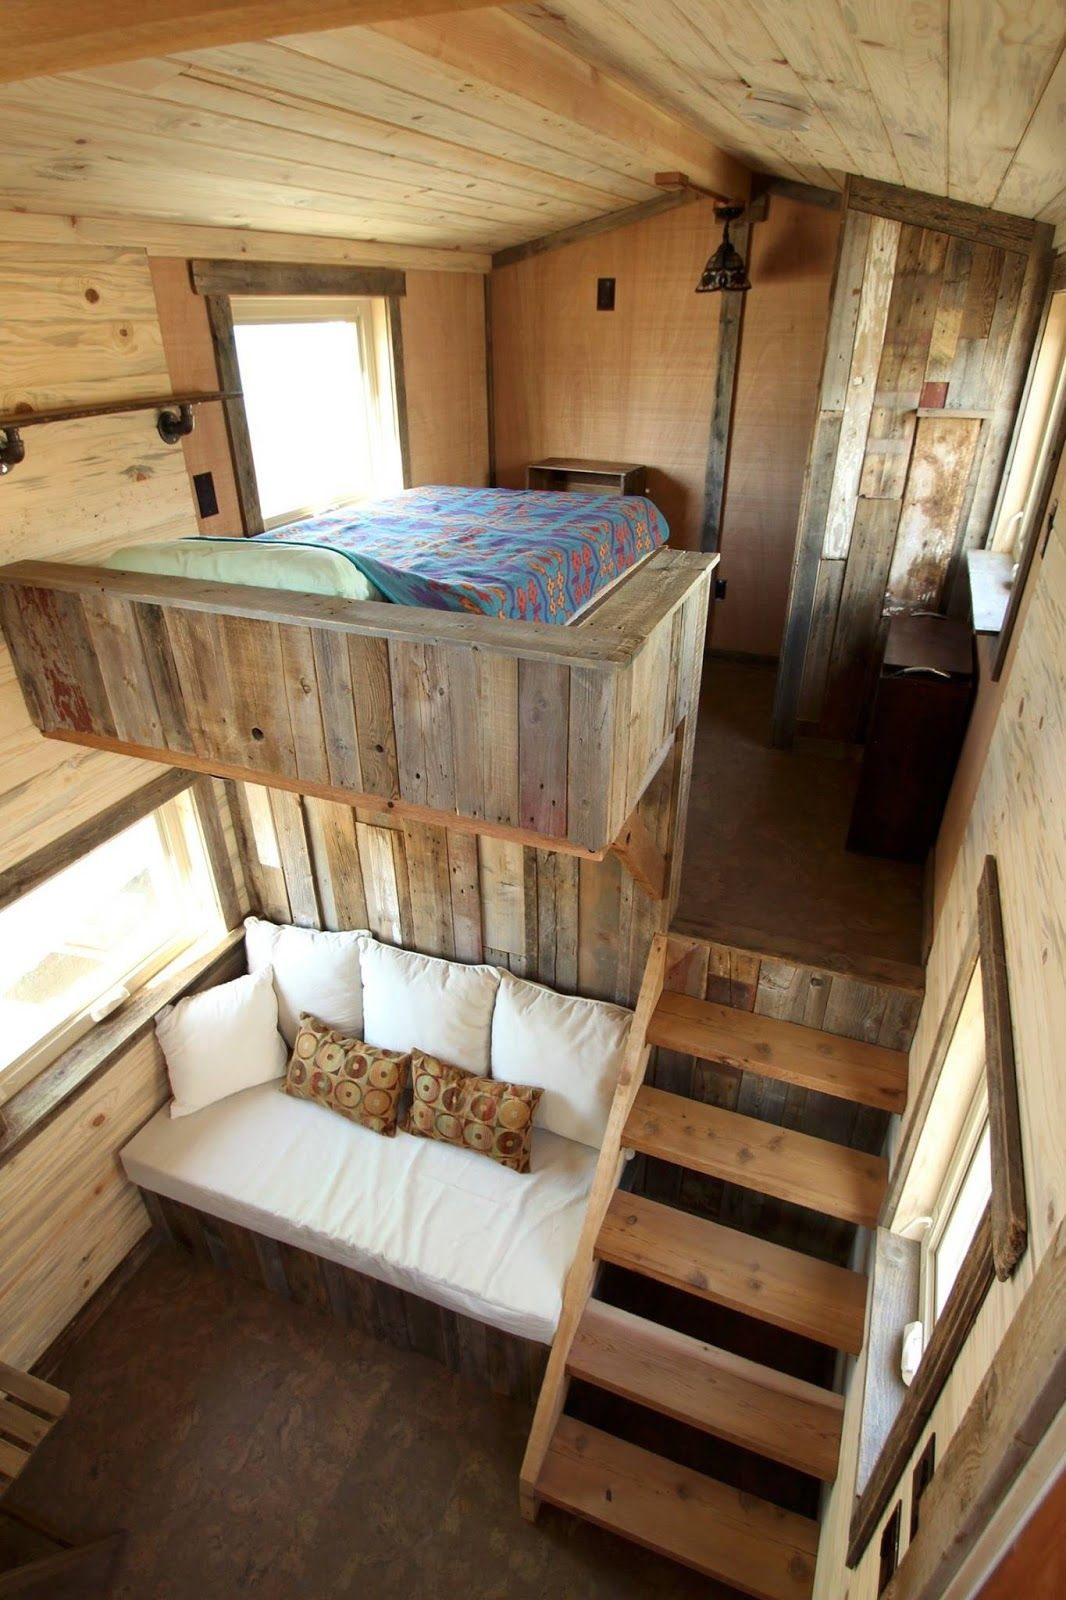 House Design Small House Interior Design Loft: A Beautiful Custom Rustic Home From SimBLISSity Tiny Homes. Made From A Pine And Corrugated